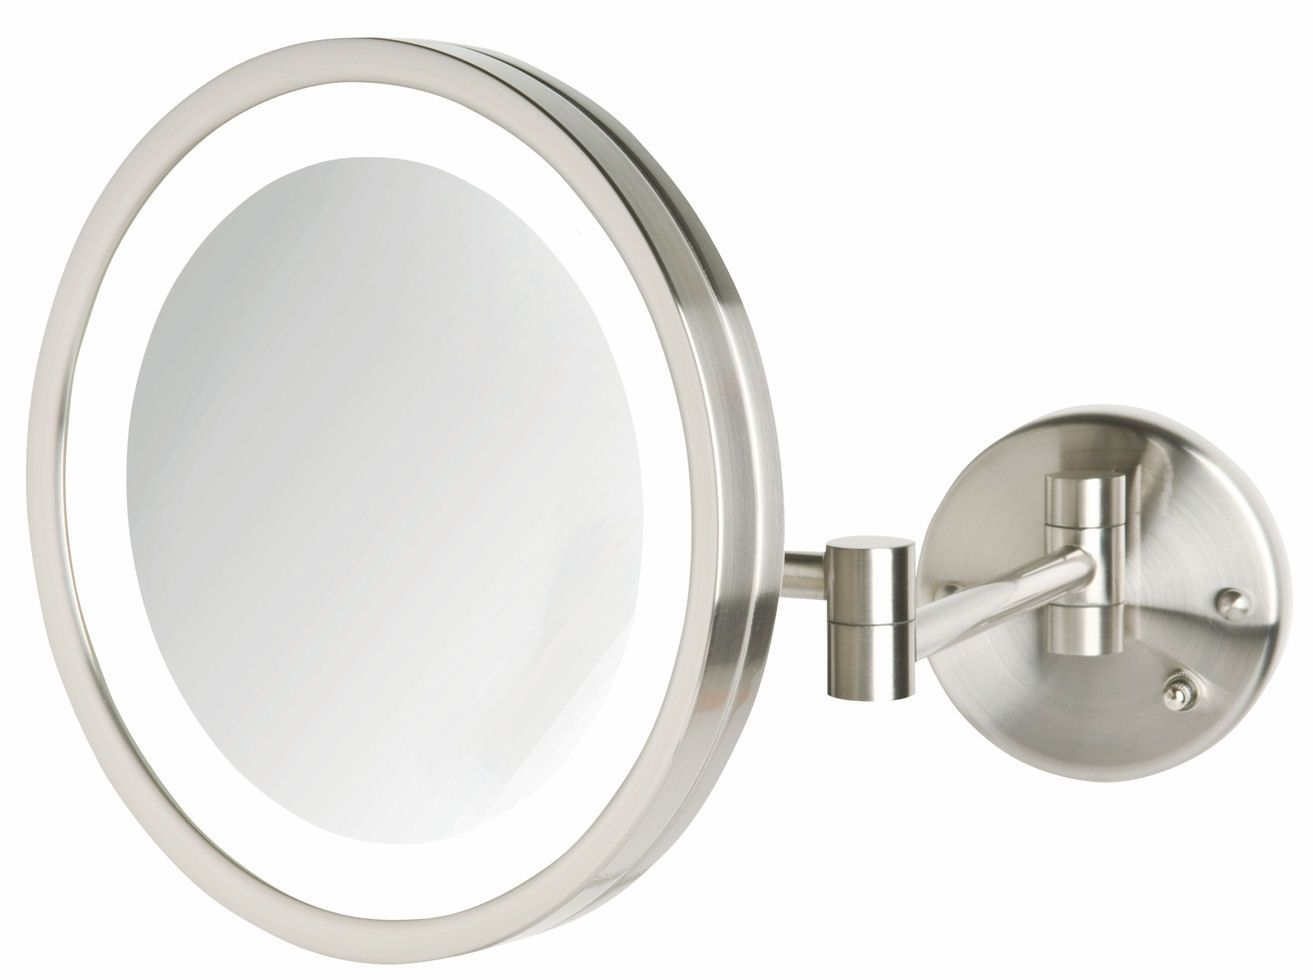 Wall Mounted Lighted Magnifying Mirror 10x Wall Mounted Makeup Mirror Wall Mounted Lighted Makeup Mirror Wall Mounted Magnifying Mirror